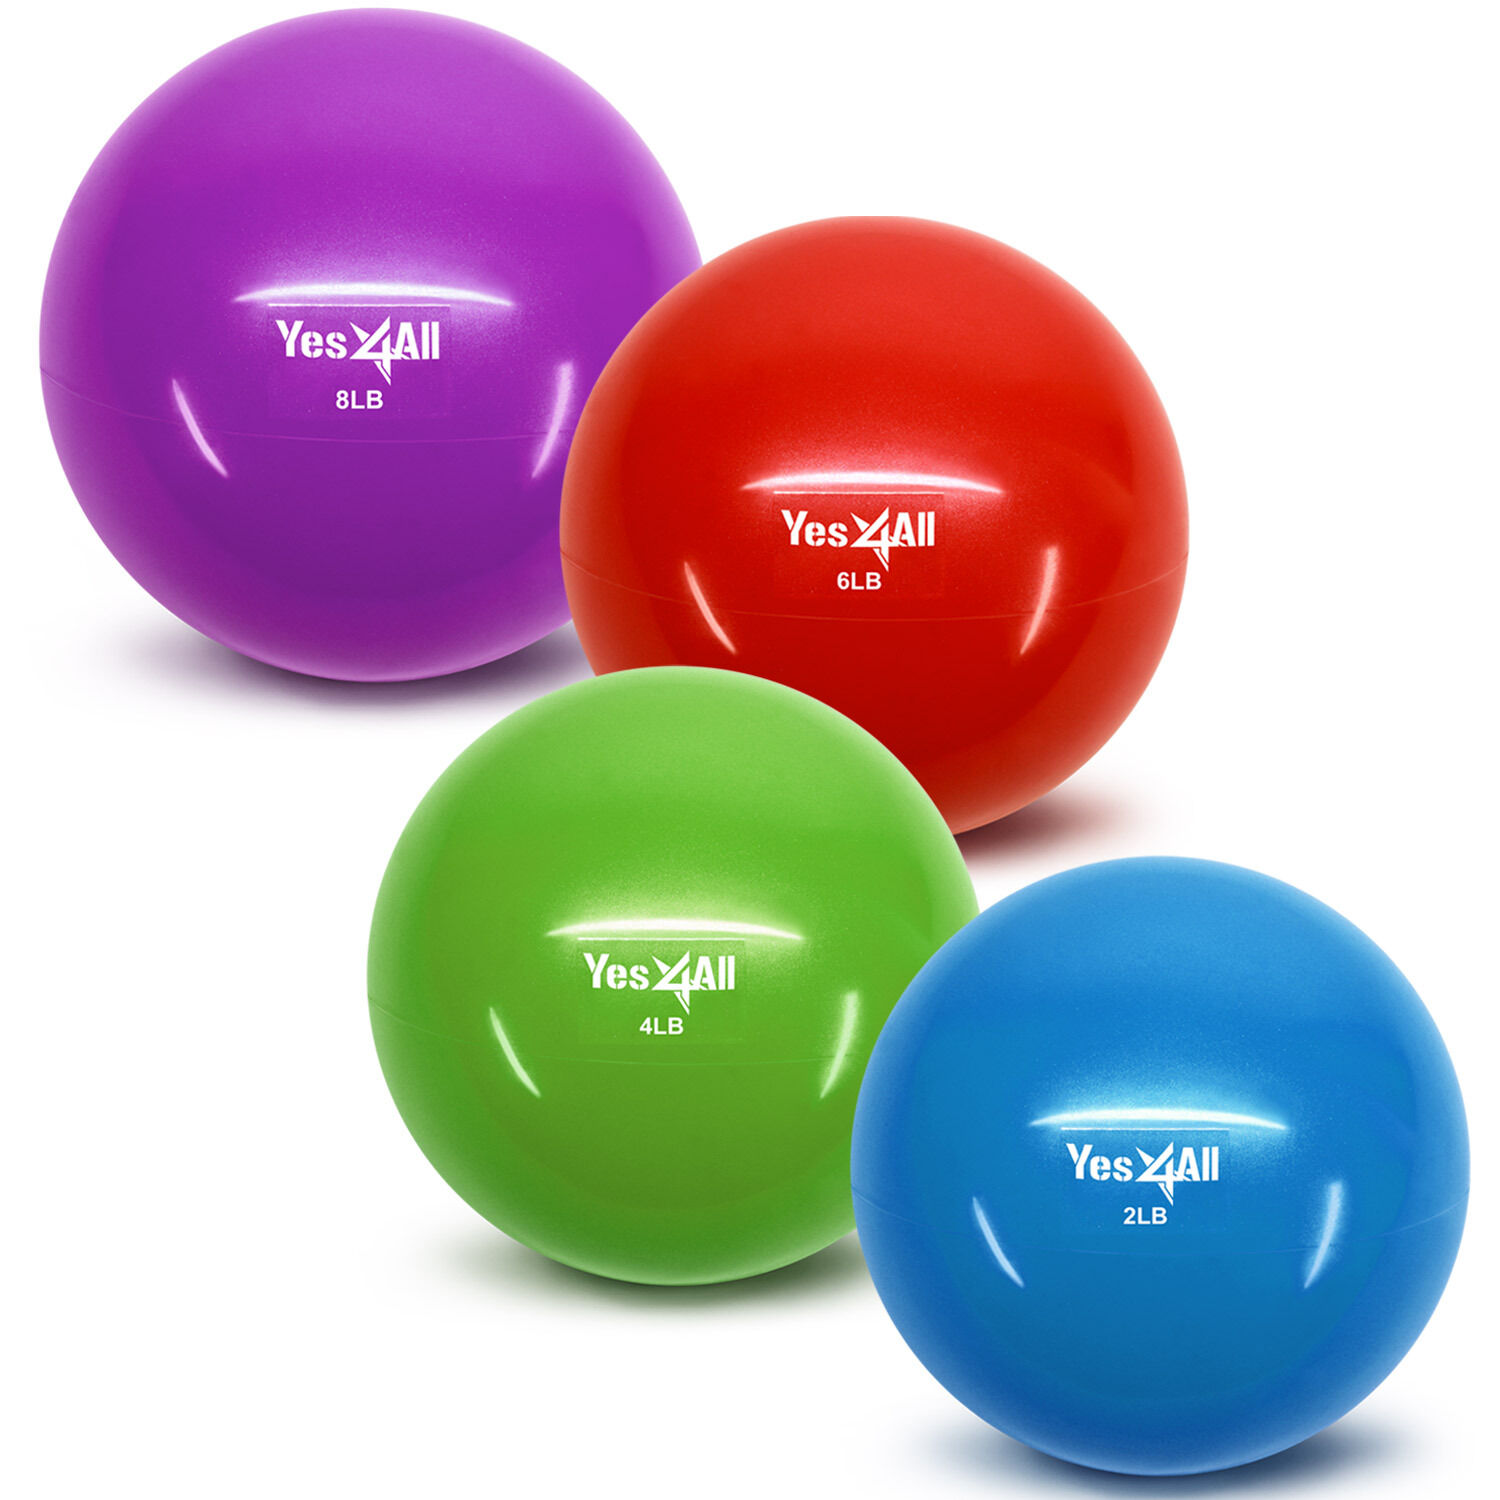 Yes4all Premium Toning Ball Yoga Exercise Soft Gym Therapy W